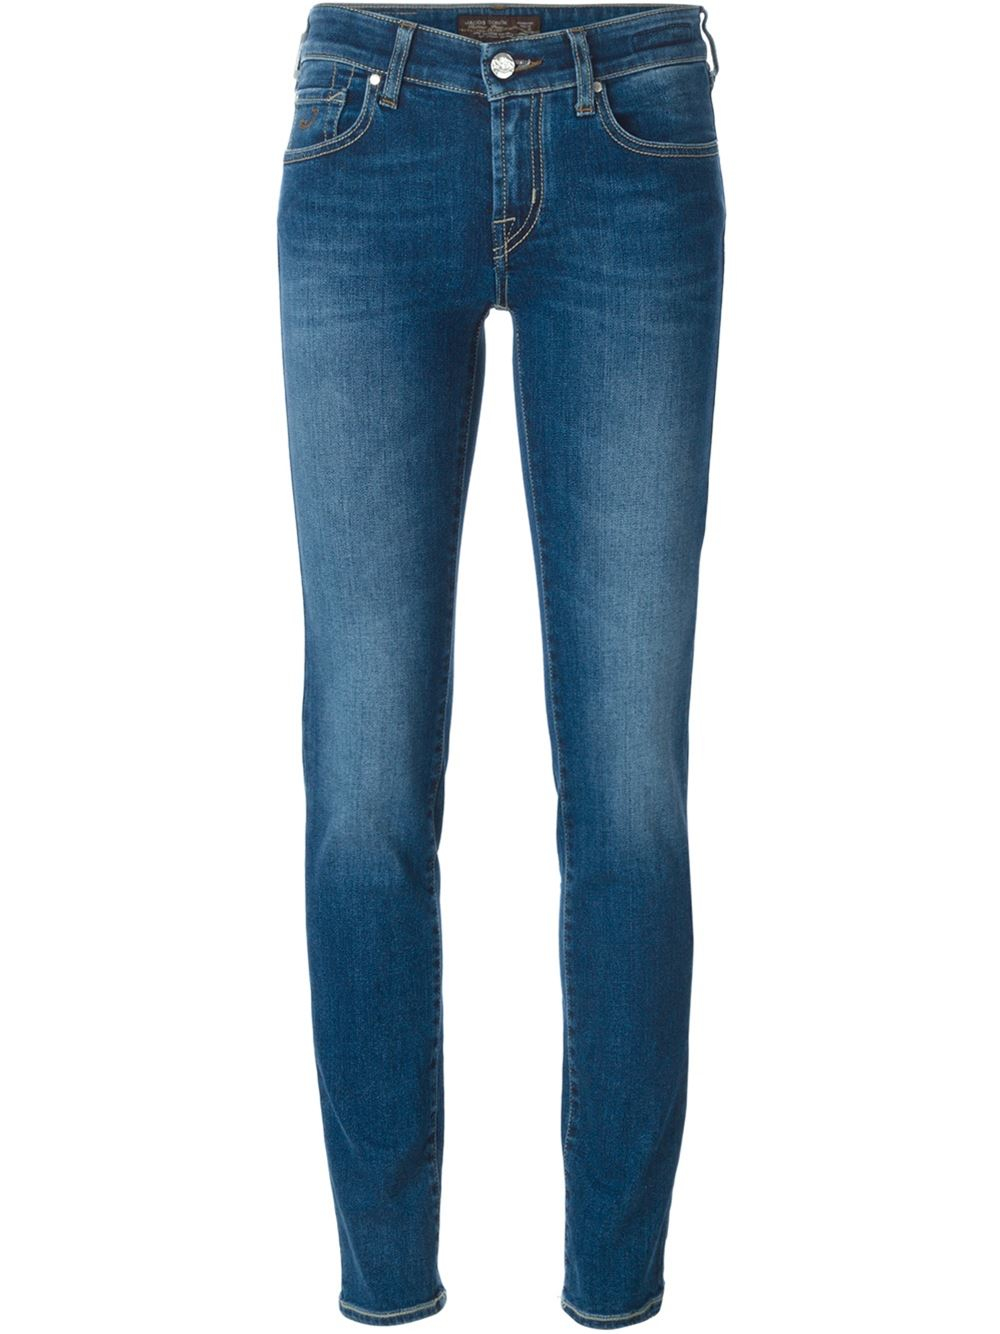 jacob cohen skinny jeans in blue lyst. Black Bedroom Furniture Sets. Home Design Ideas